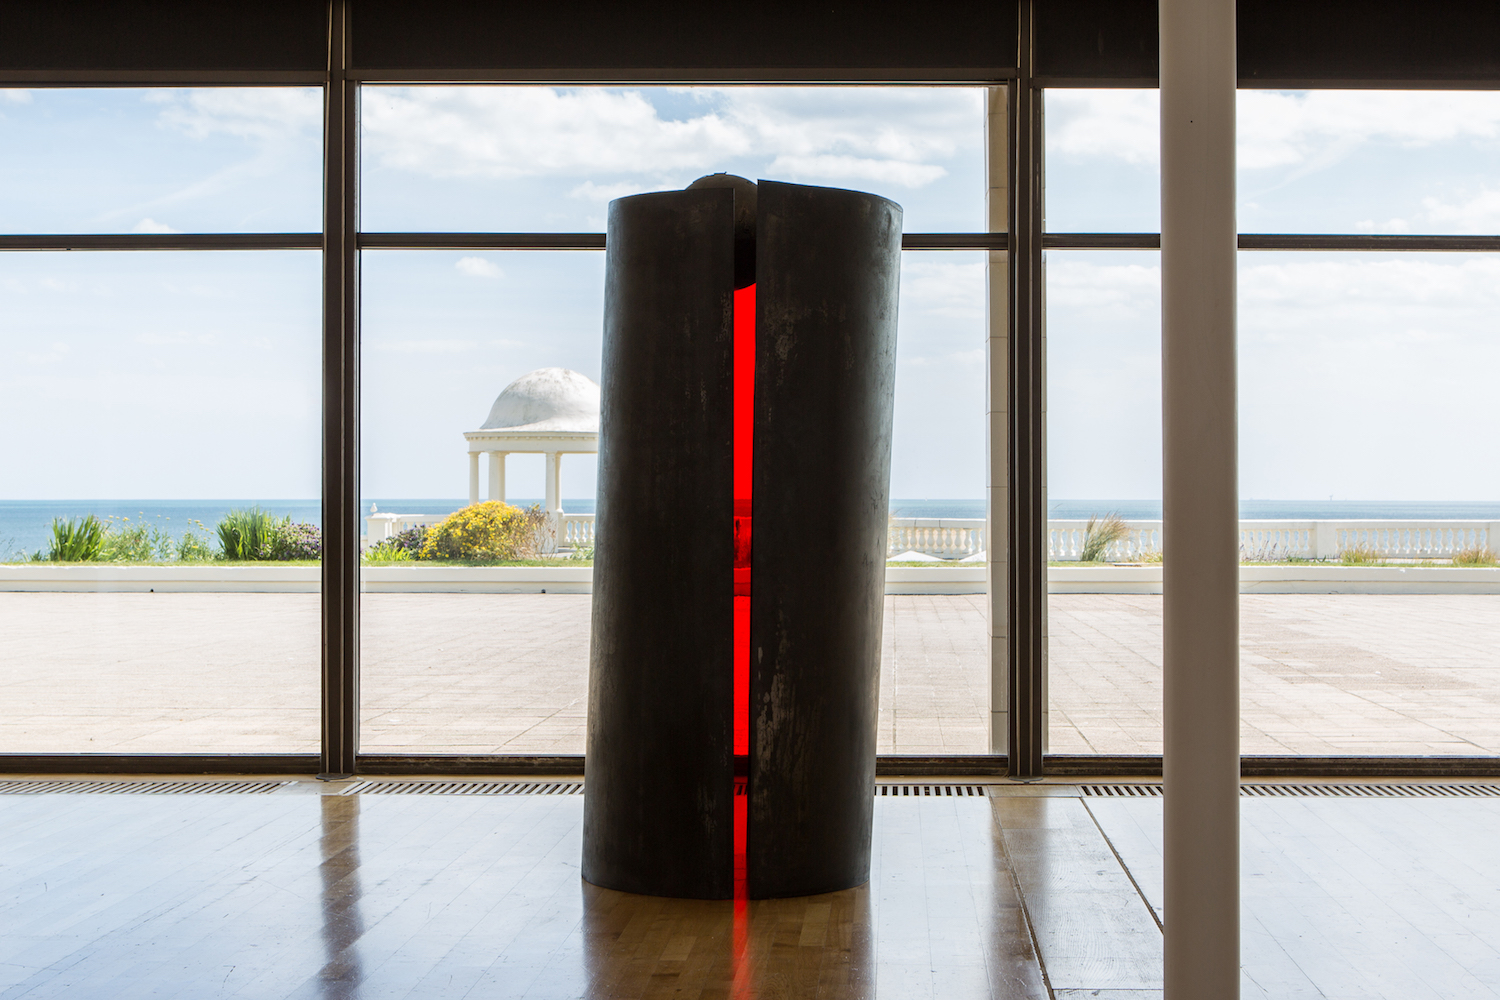 Installation view of 'Alison Wilding: Right Here and Out There' at the De La Warr Pavilion. Courtesy the artist and Karsten Schubert London. Photo © Rob Harris